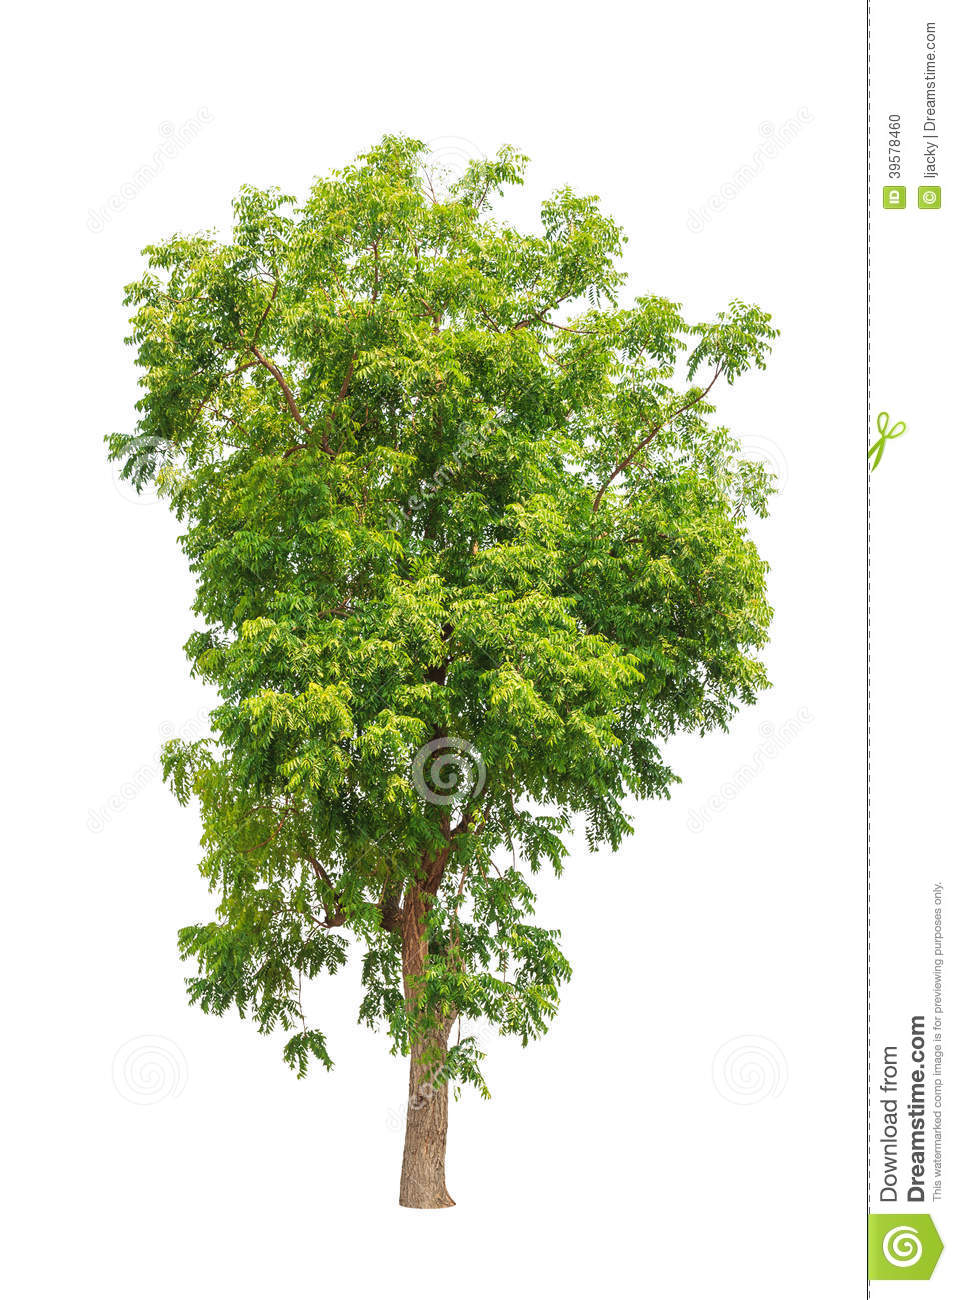 2 901 Neem Tree Photos Free Royalty Free Stock Photos From Dreamstime Even if it is not real, but artificial or even virtual. dreamstime com